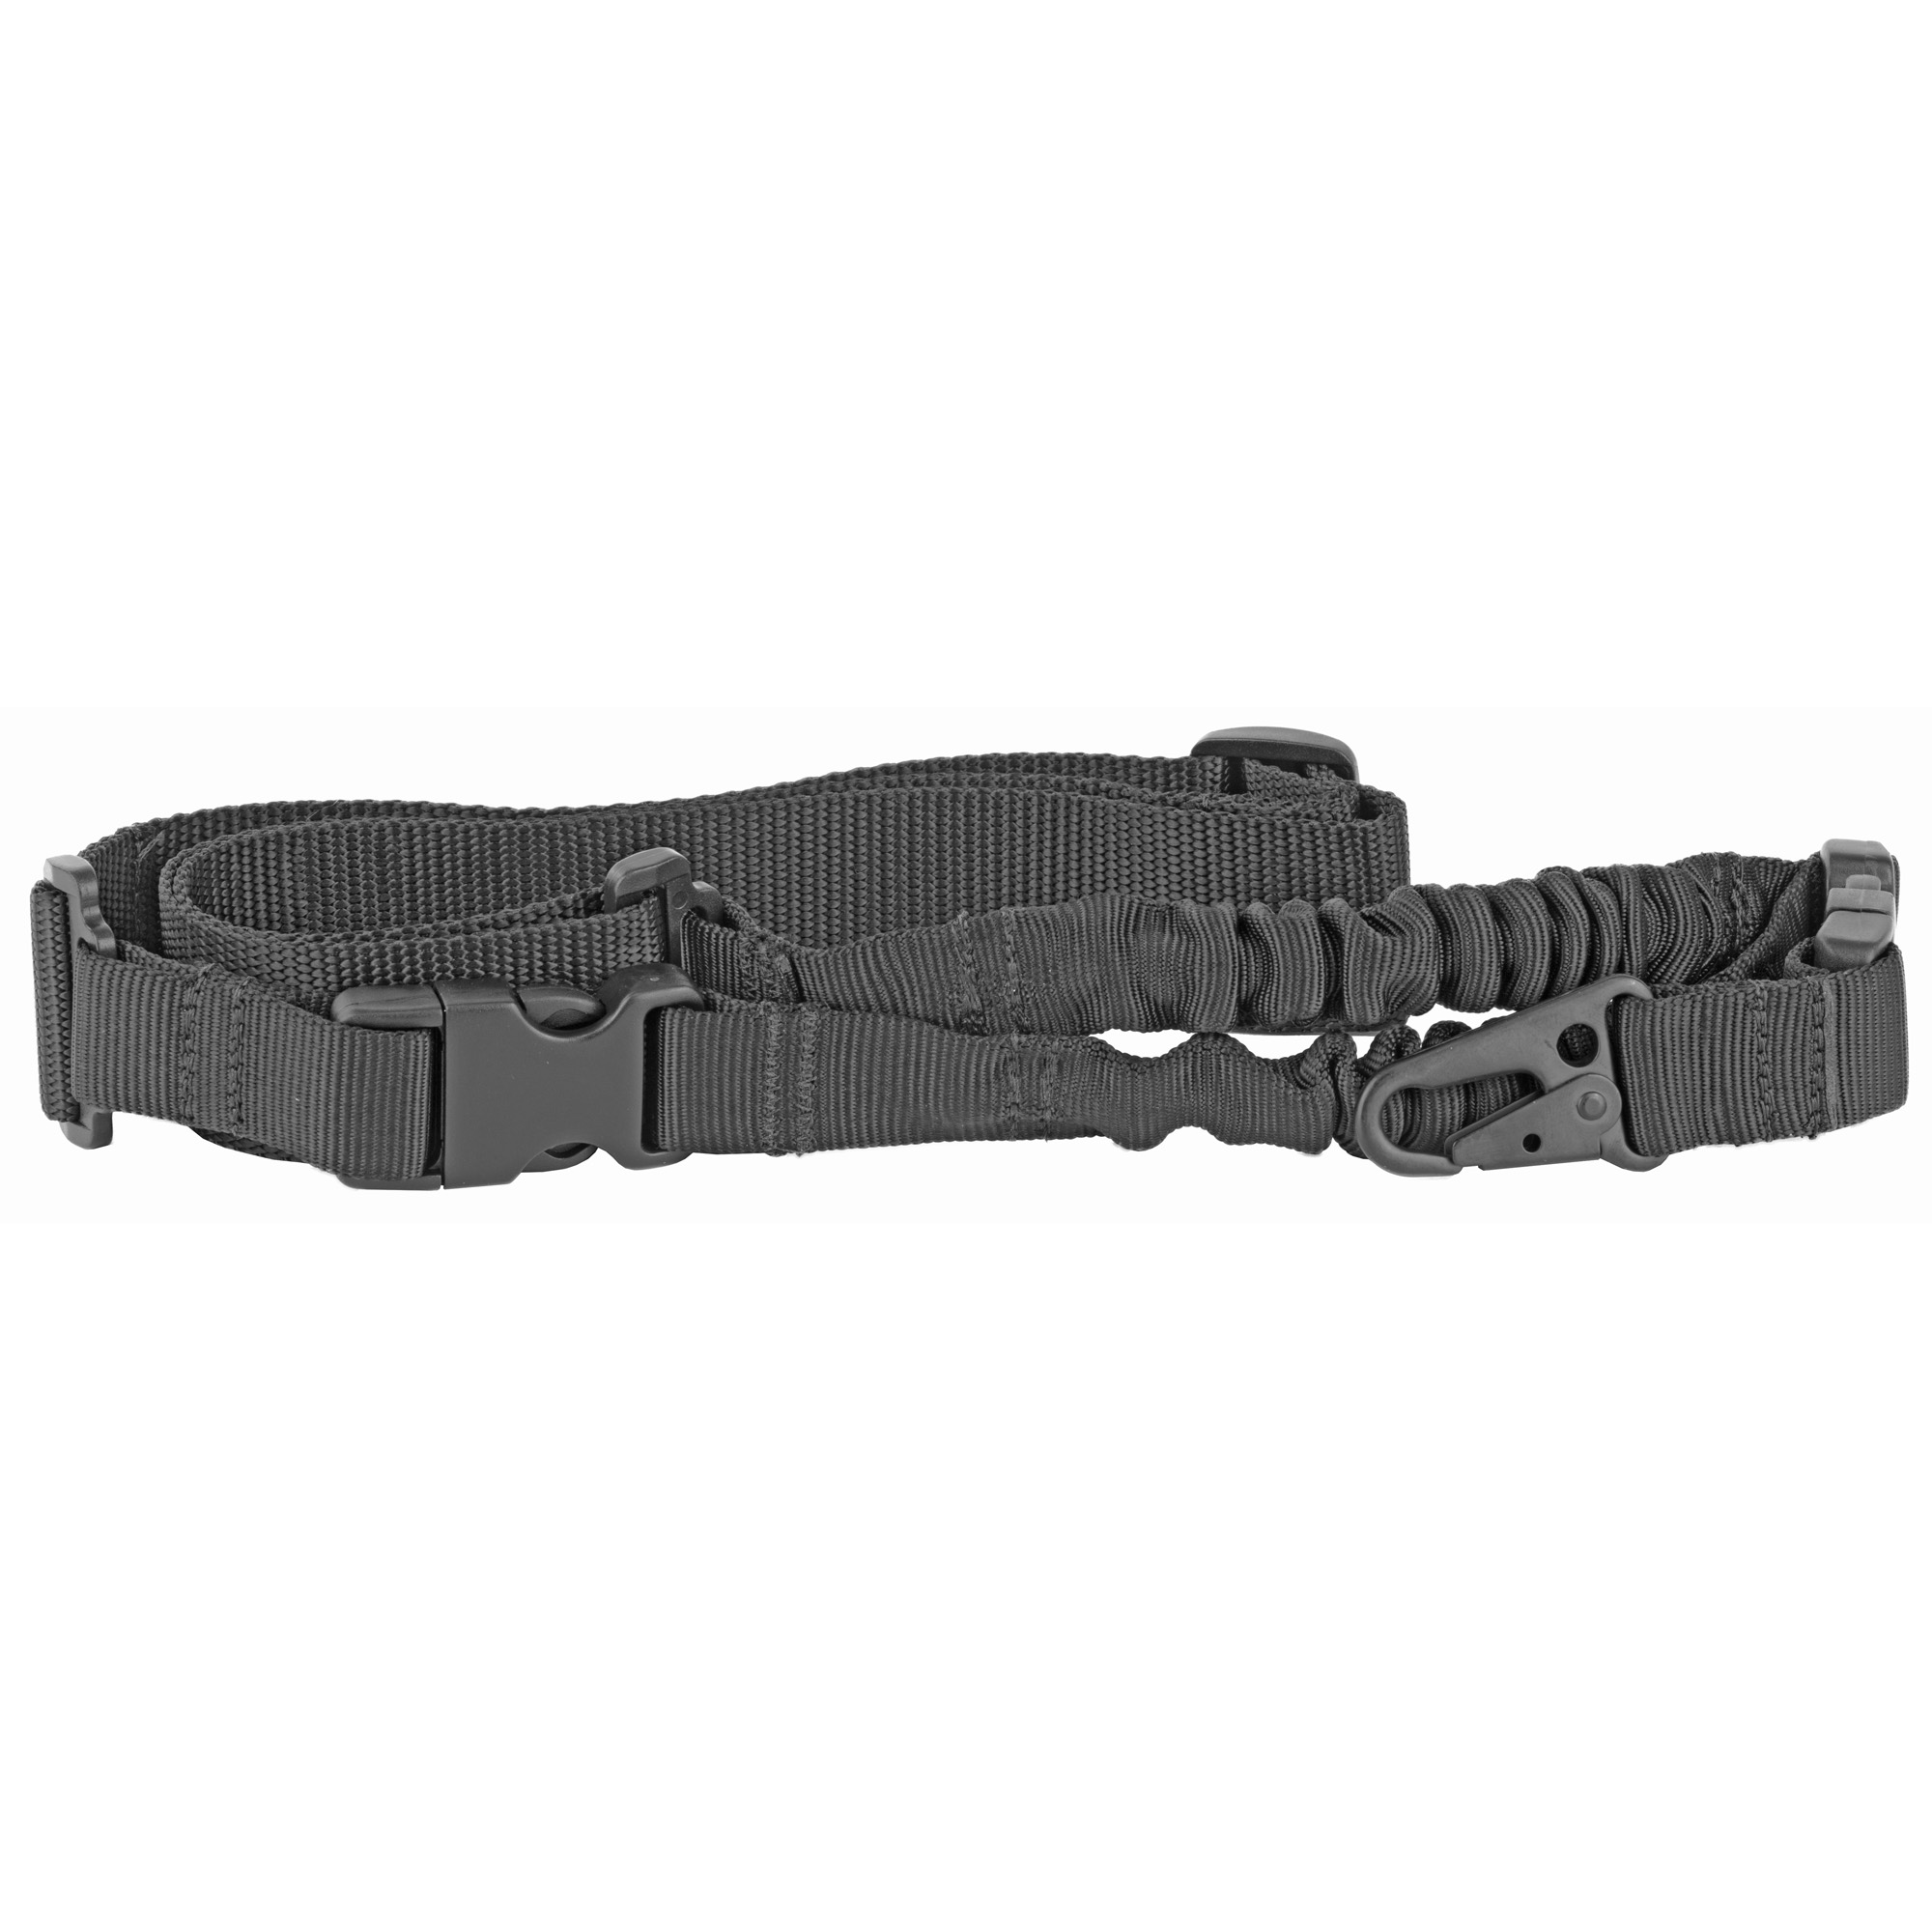 """One point sling allows easy movement when operating inside confined spaces. Maintains its structure for easy donning and has upgraded tubular webbing with fully-enclosed bungee portion"""" allowing for increased durability."""